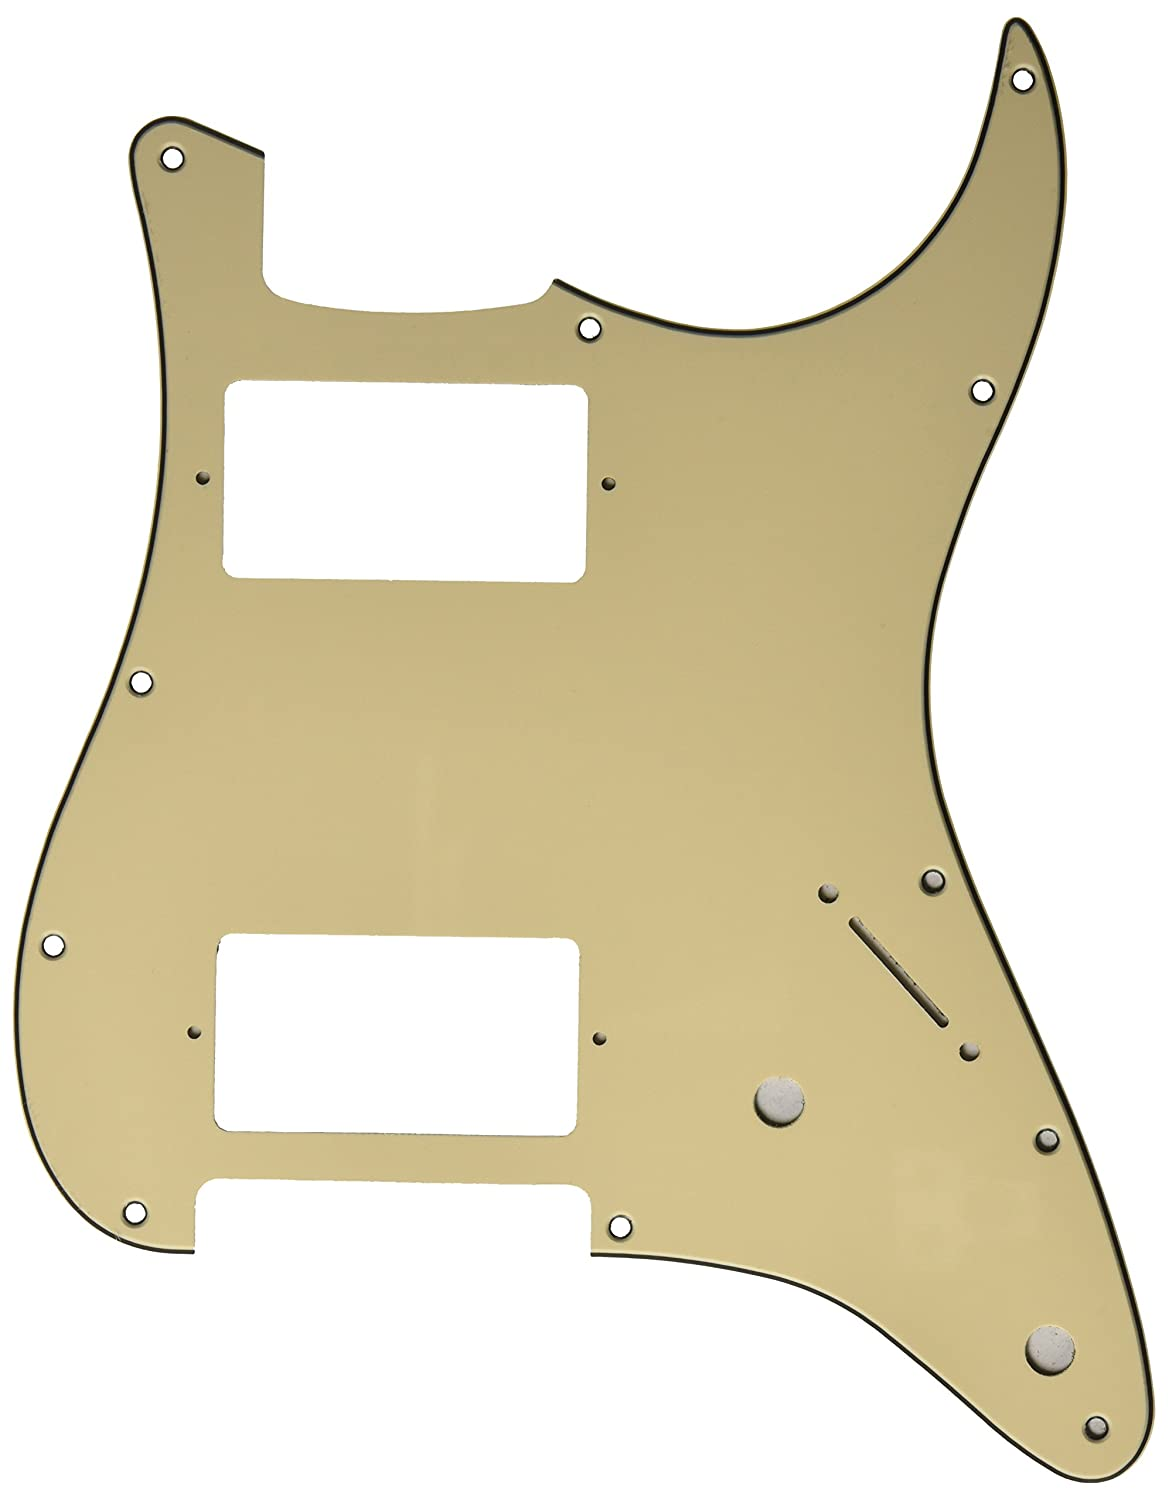 Kmise MI0135 Aged White Guitar Pickguard HH 3 Ply for Fender Strat Replacement